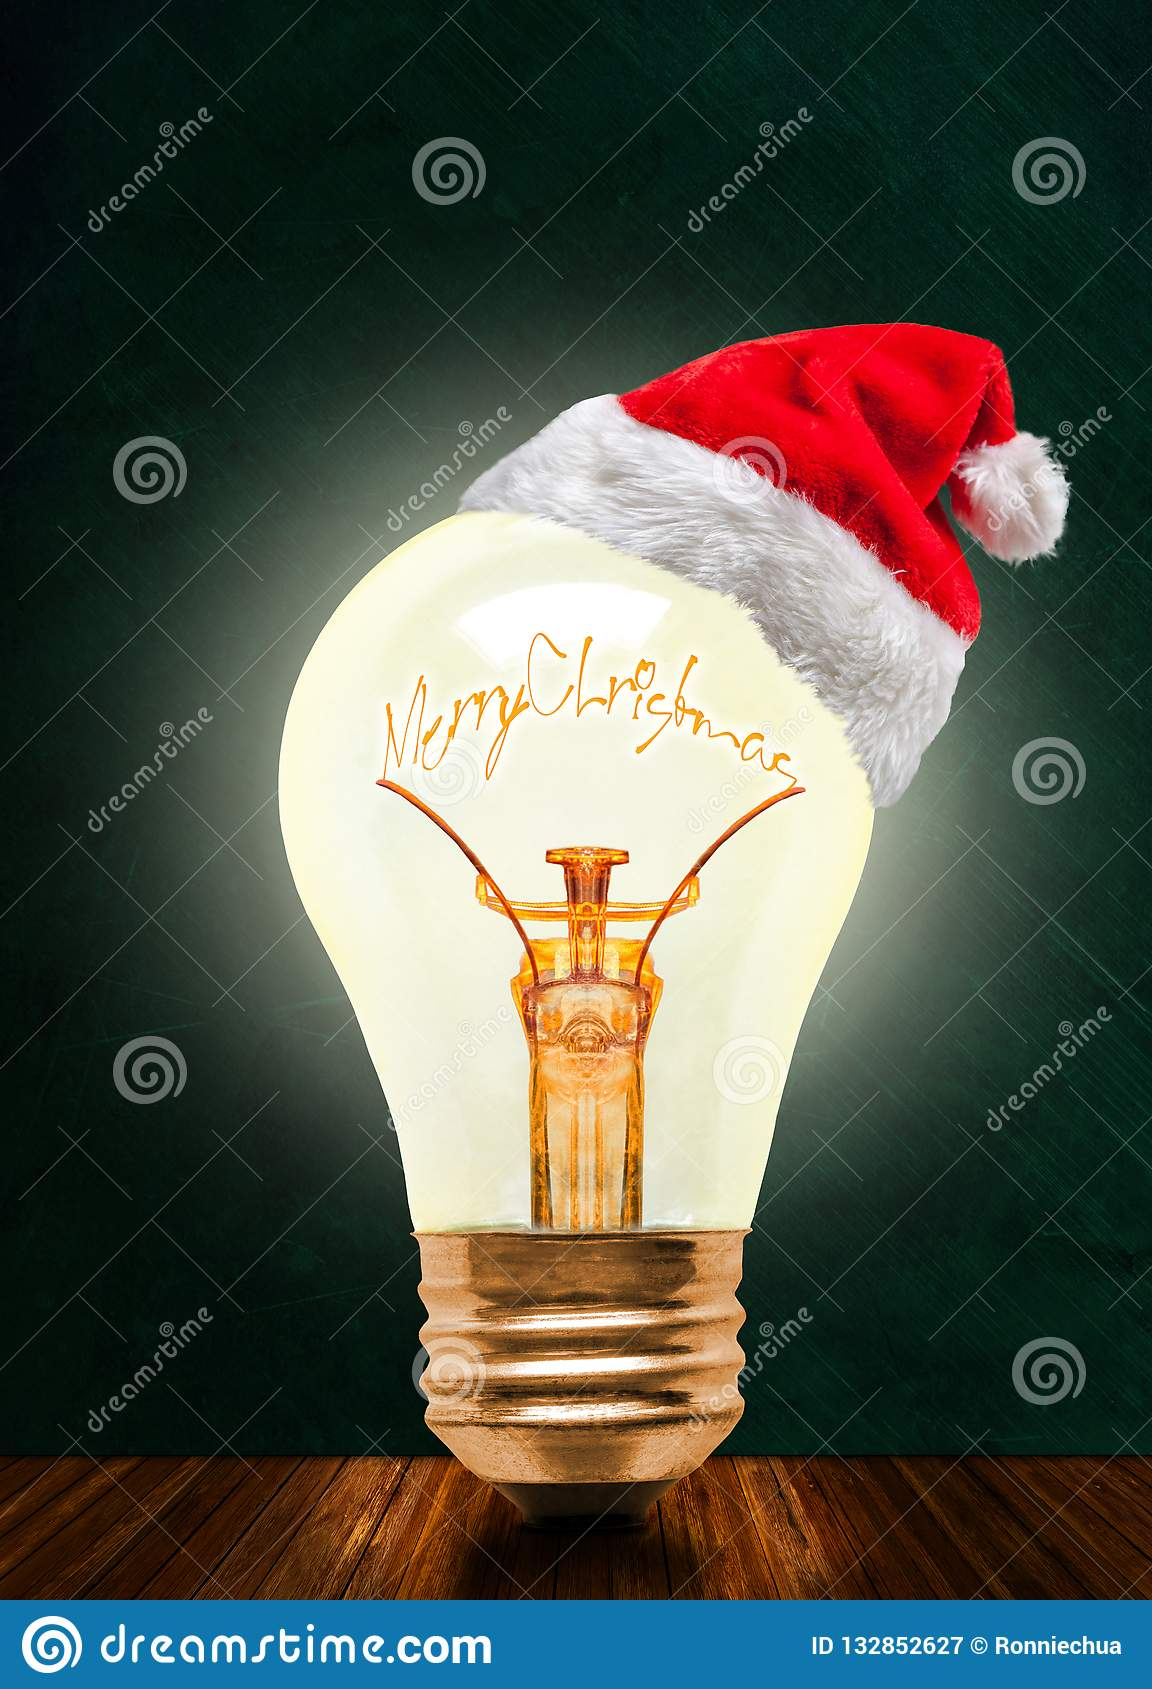 Merry Christmas Glowing Light Bulb With Santa Hat And Copy Space